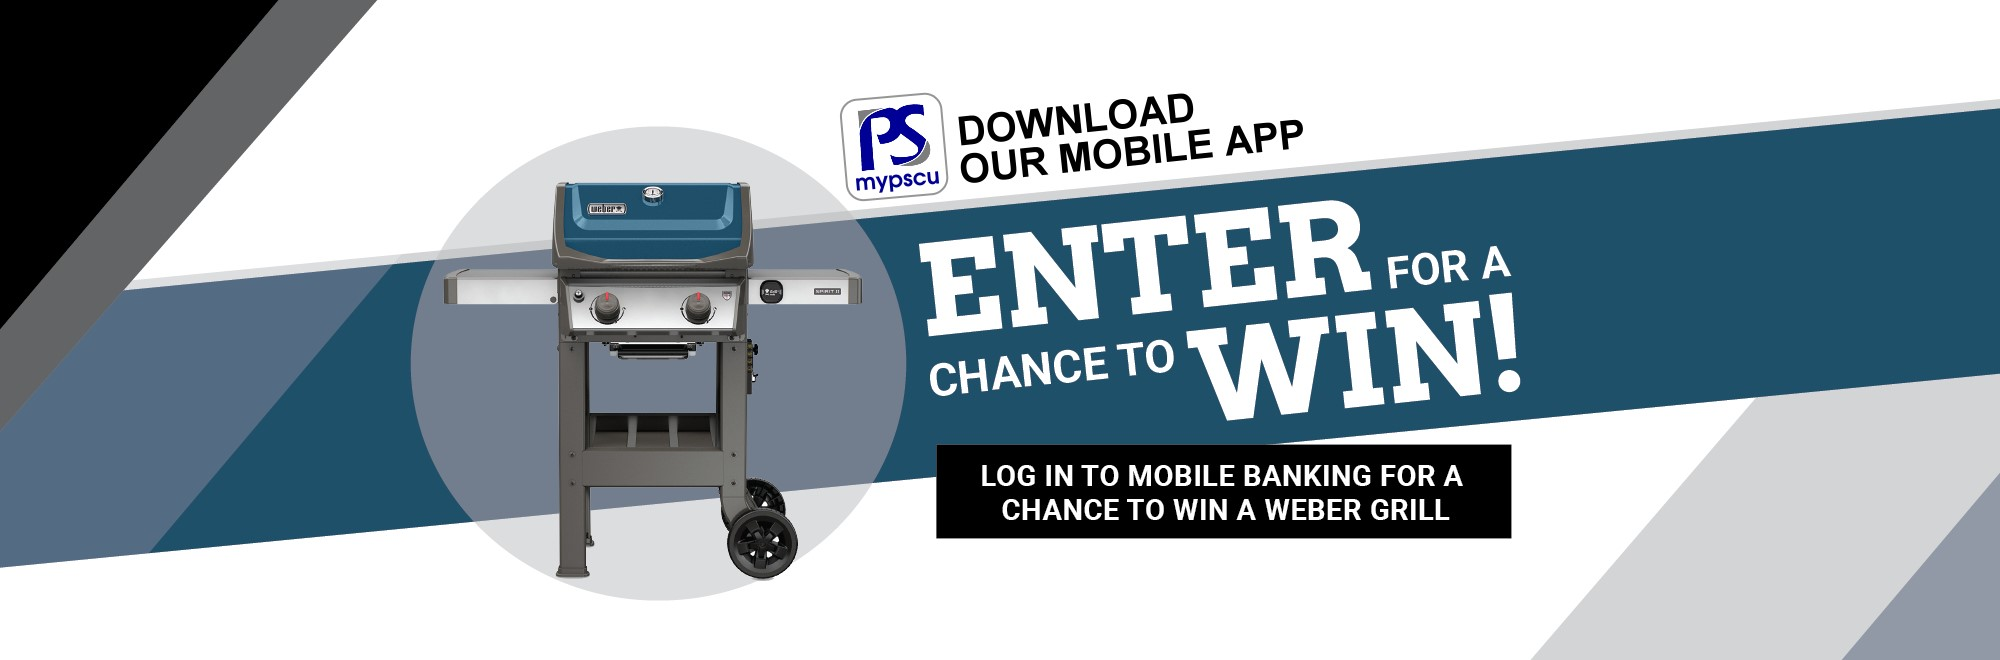 Login to mobile banking for a chance to win a weber grill. see cu for details